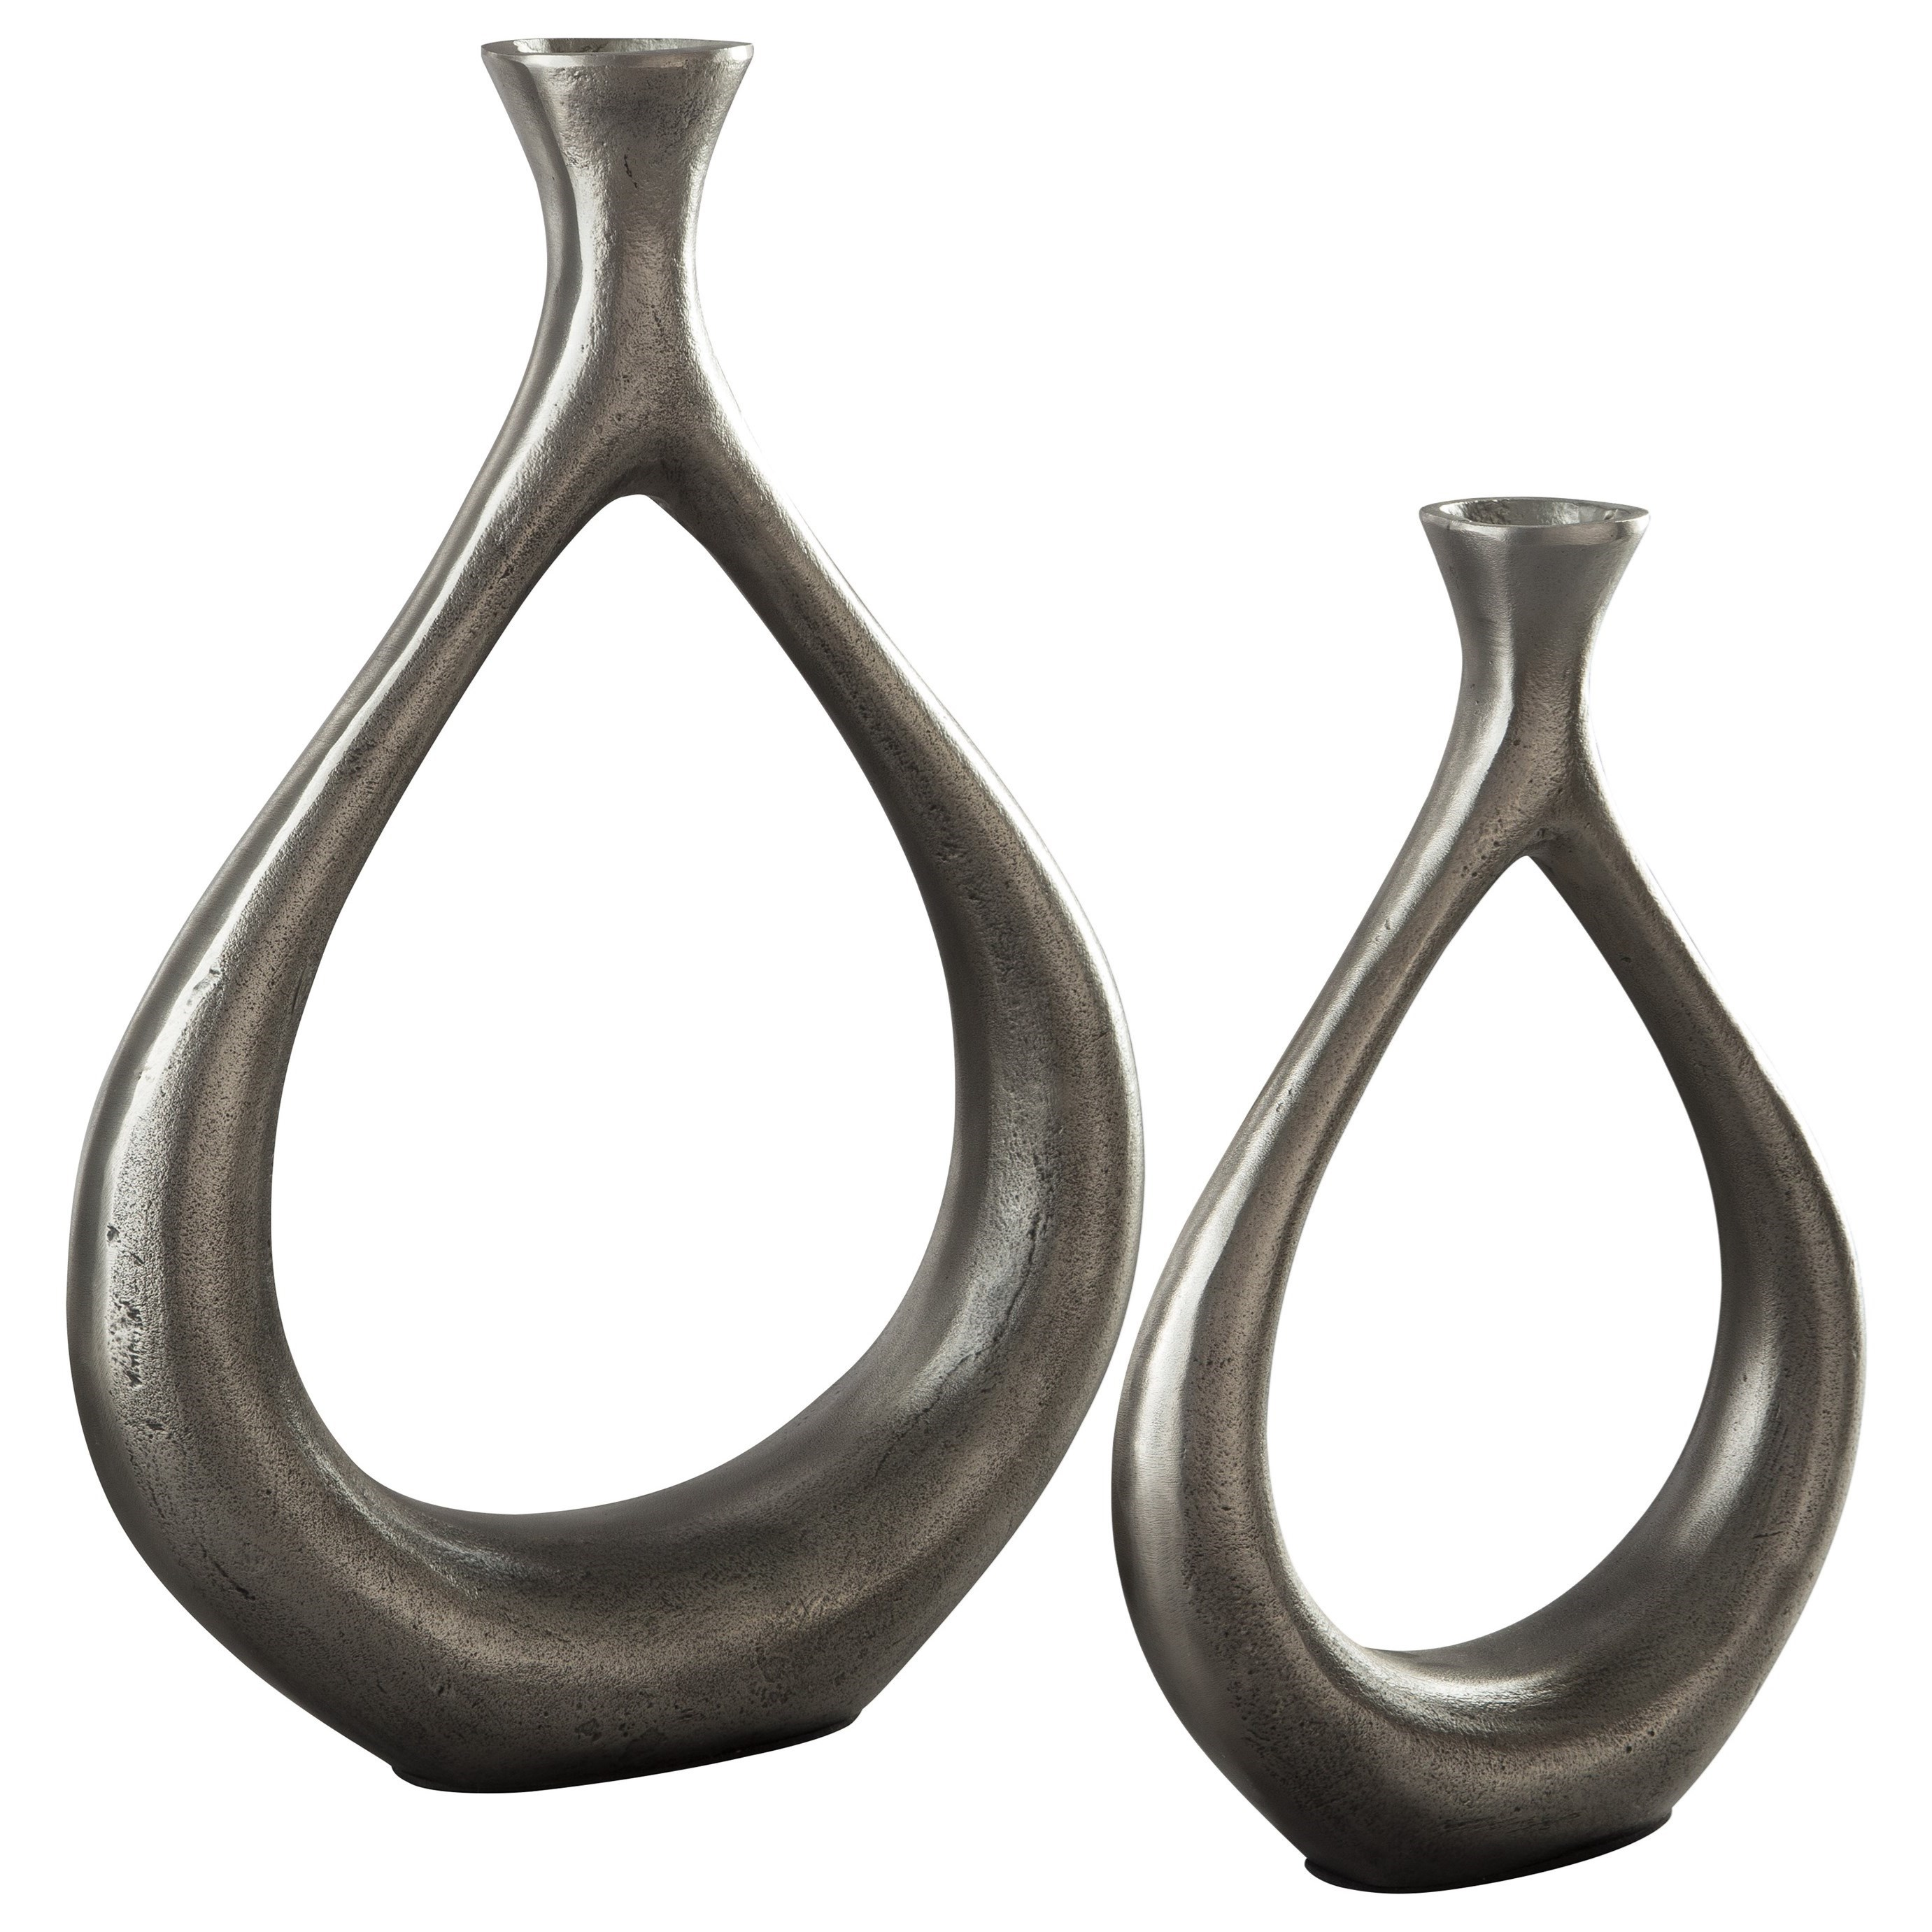 Accents Dimala Antique Silver Finish Vase Set by Signature Design at Fisher Home Furnishings